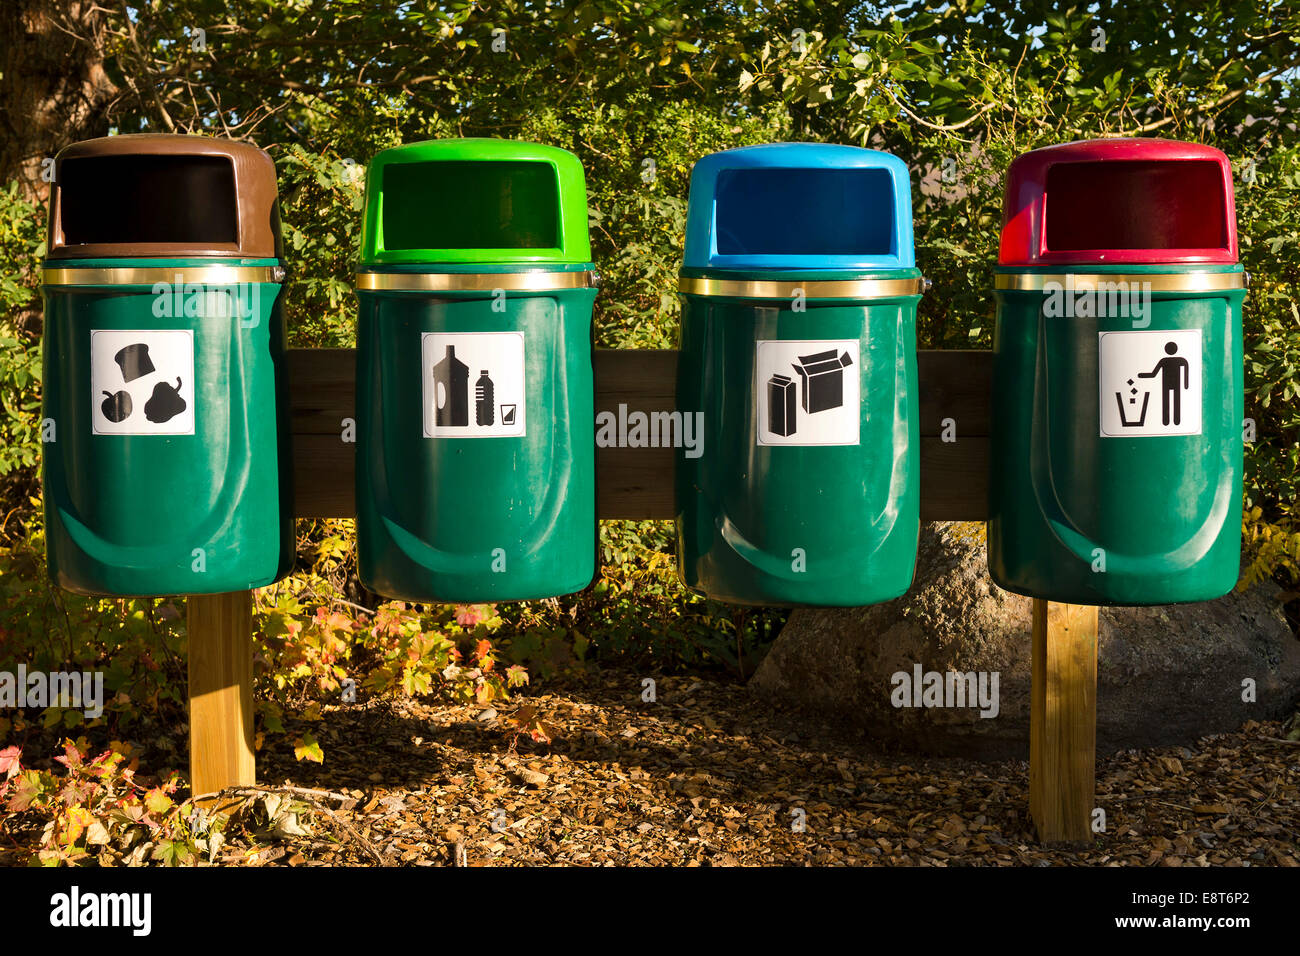 Rubbish bins for waste separation, Iceland - Stock Image